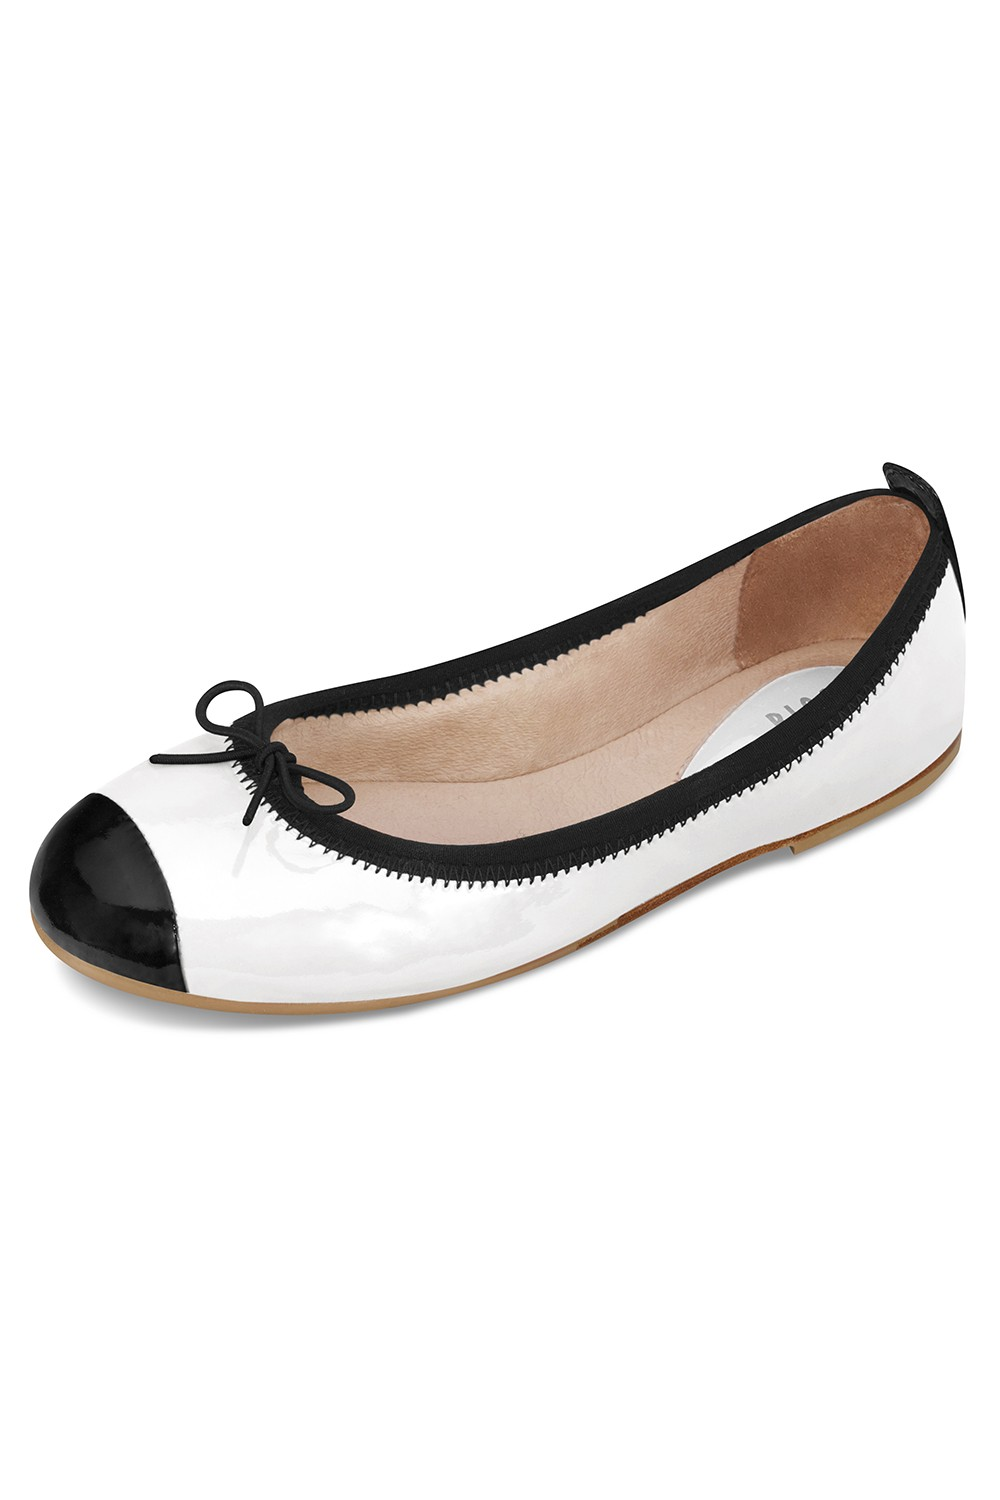 Luxury Leather Outsole -  Girls Girls Fashion Shoes